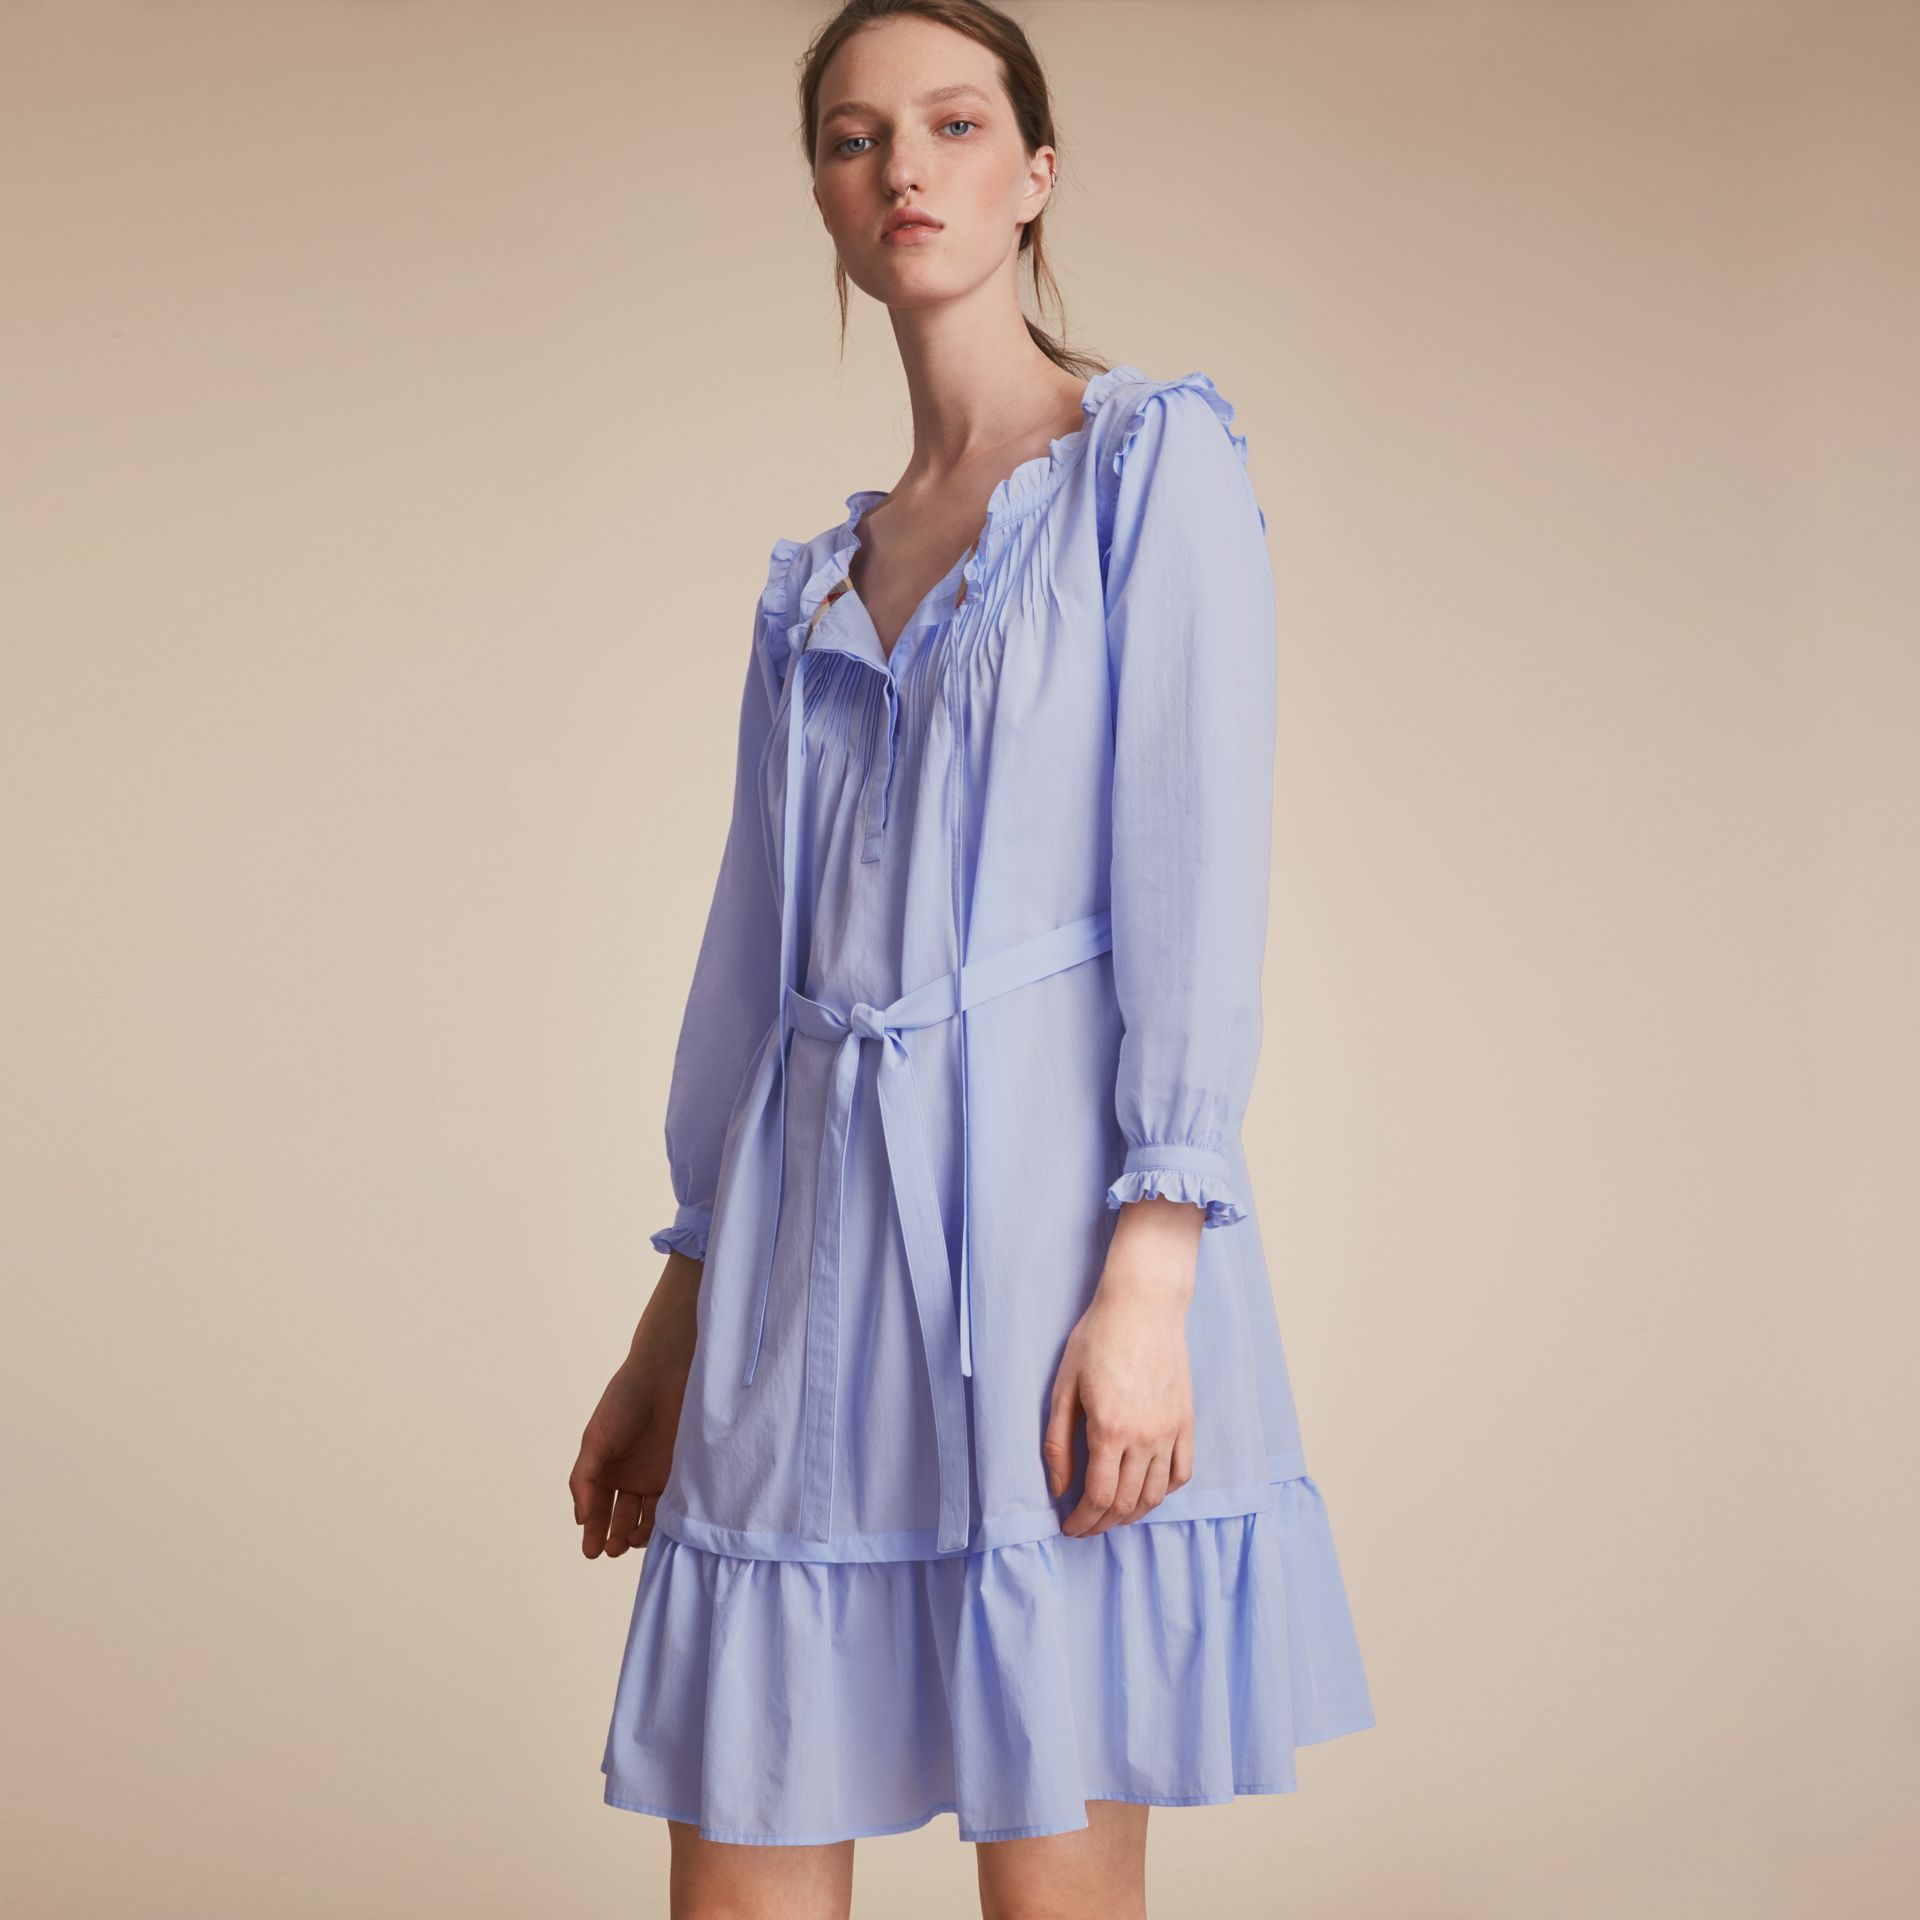 Ruffle and Pintuck Detail Cotton Dress - Women | Burberry - gallery image 6